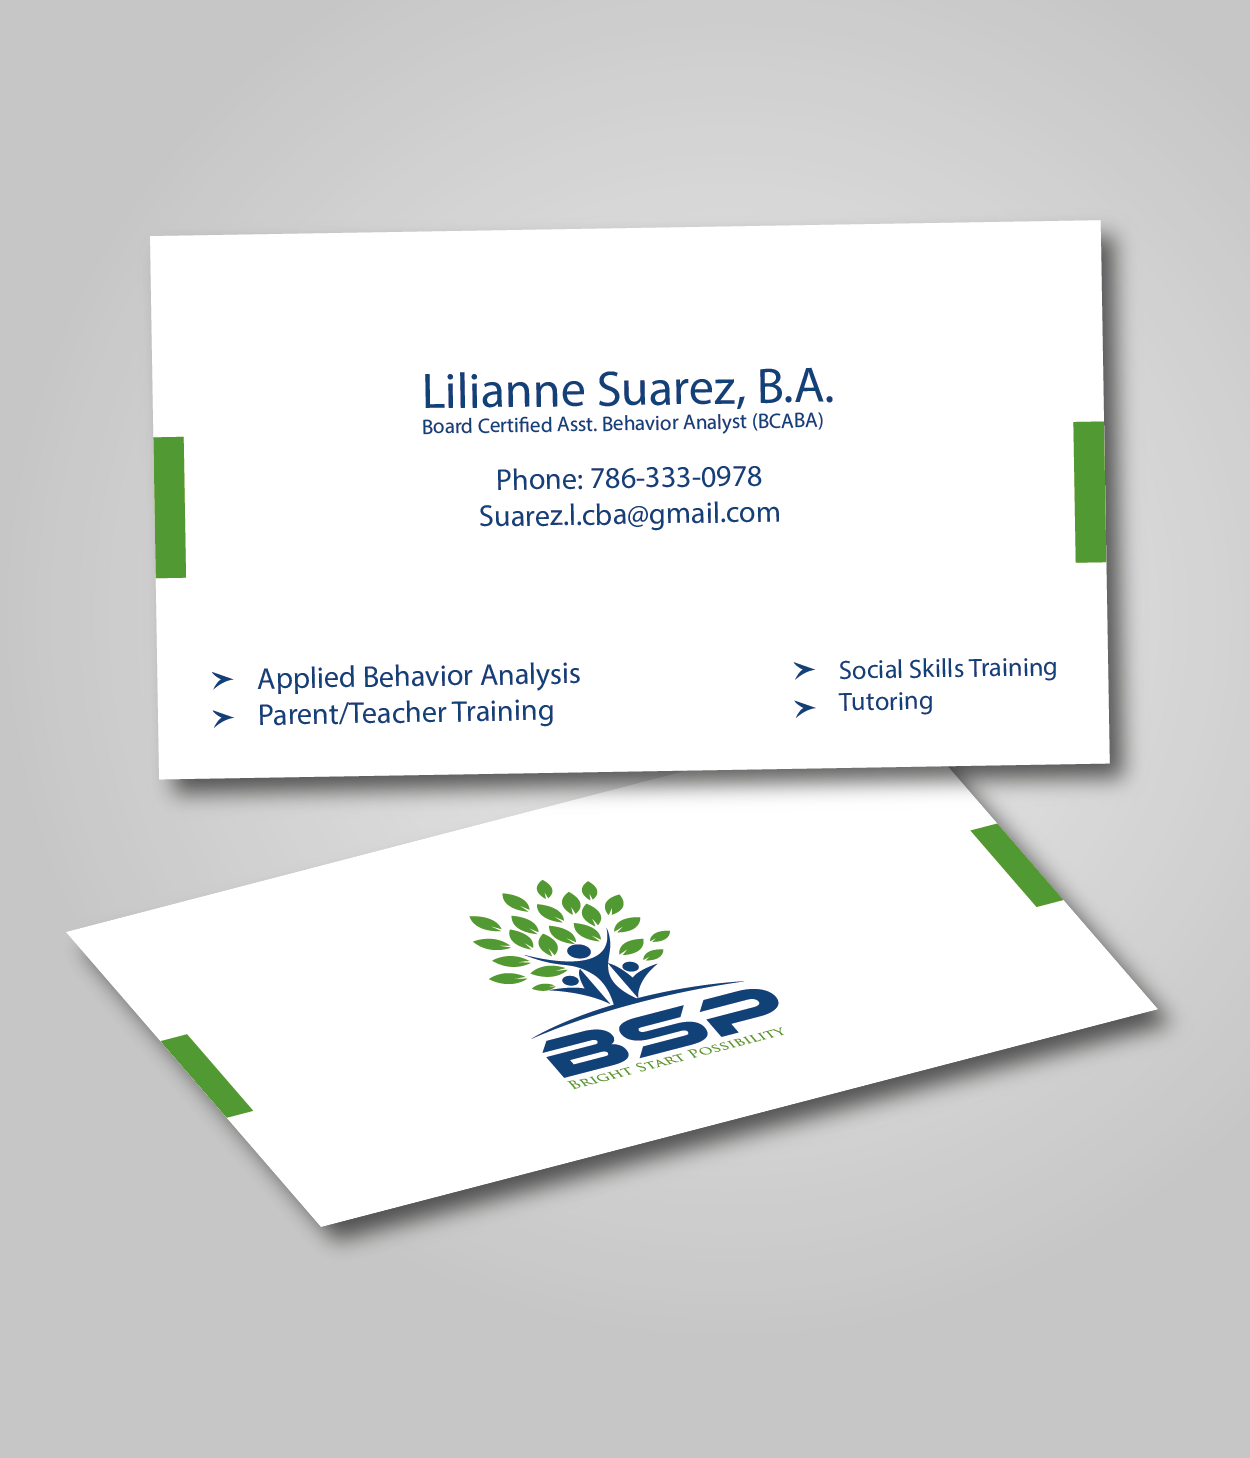 Business business card design for a company by rk design 3933180 business business card design for a company in united states design 3933180 reheart Choice Image